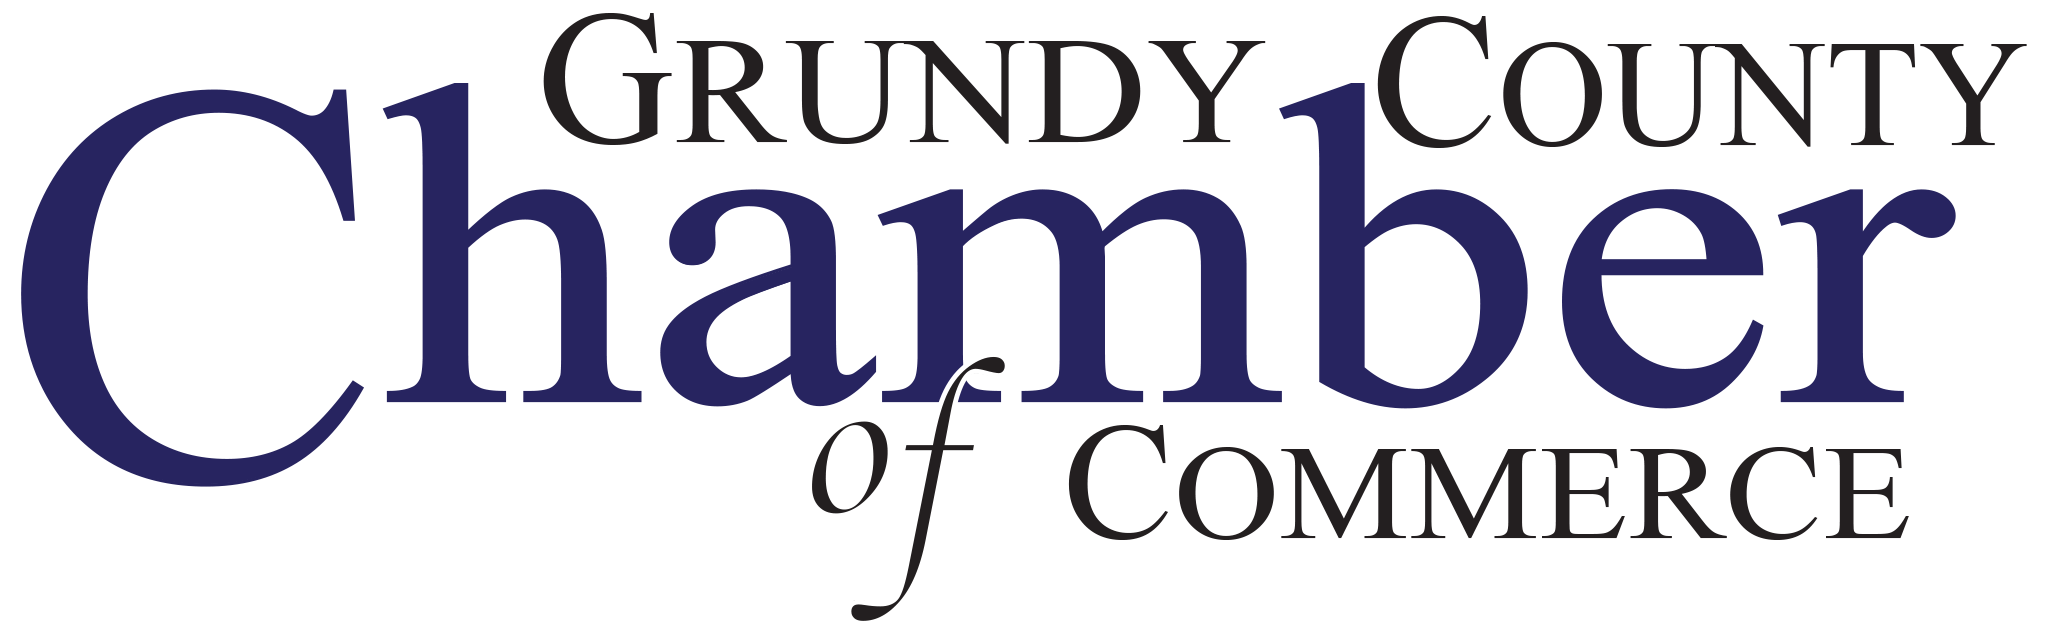 Grundy County Chamber of Commerce - Click here to visit Commerce Page